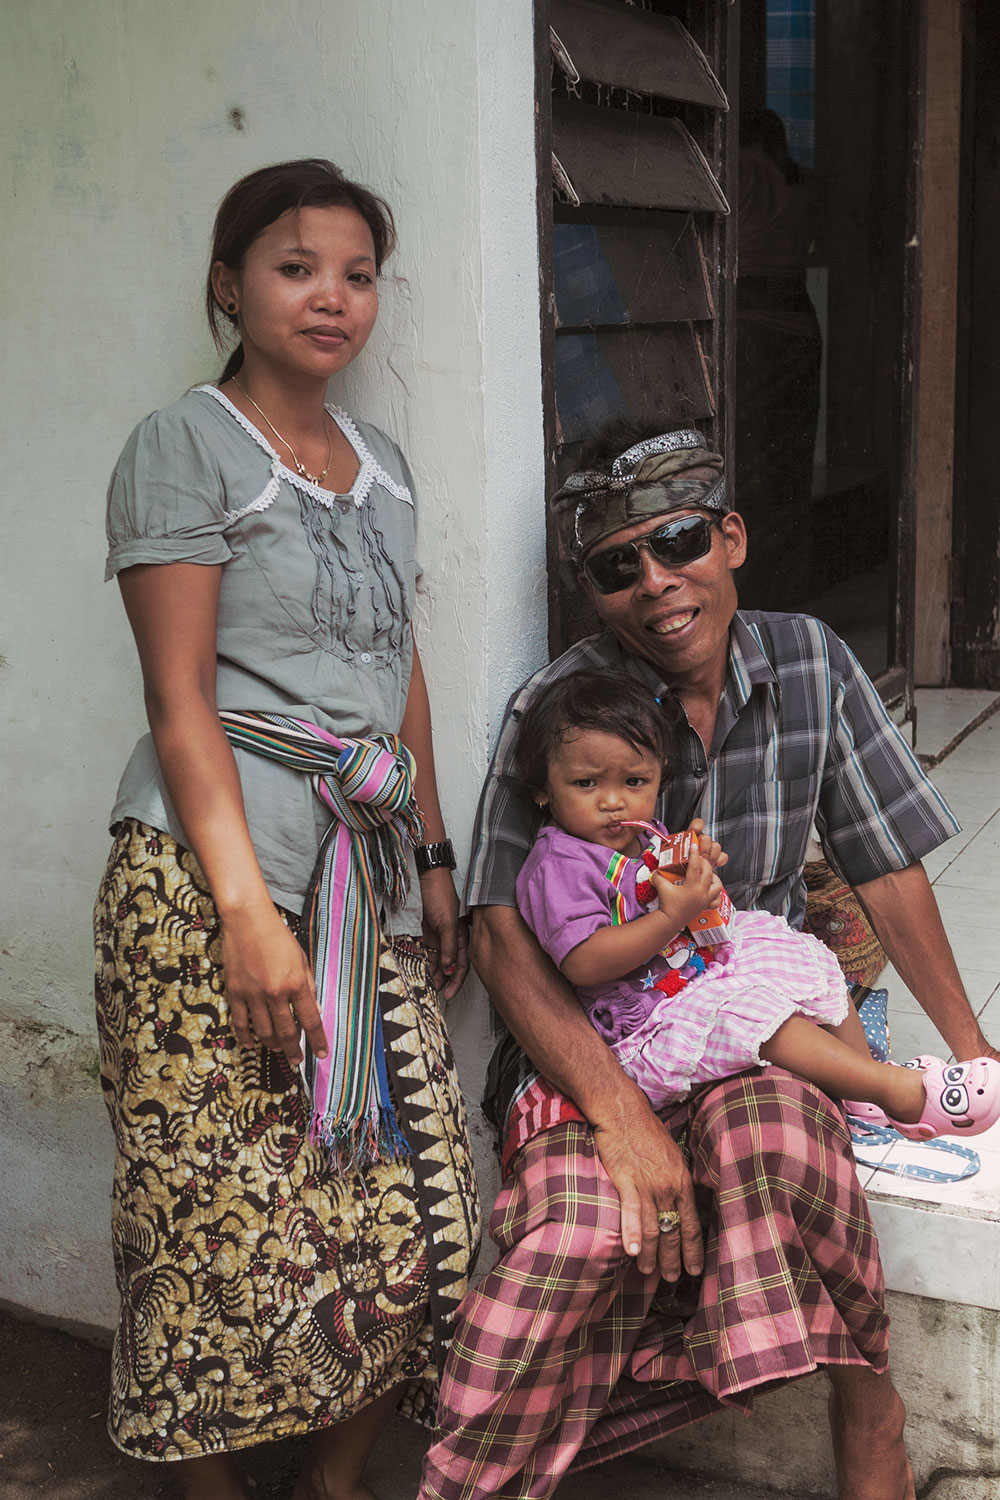 Komang, Wayan, and their little girl